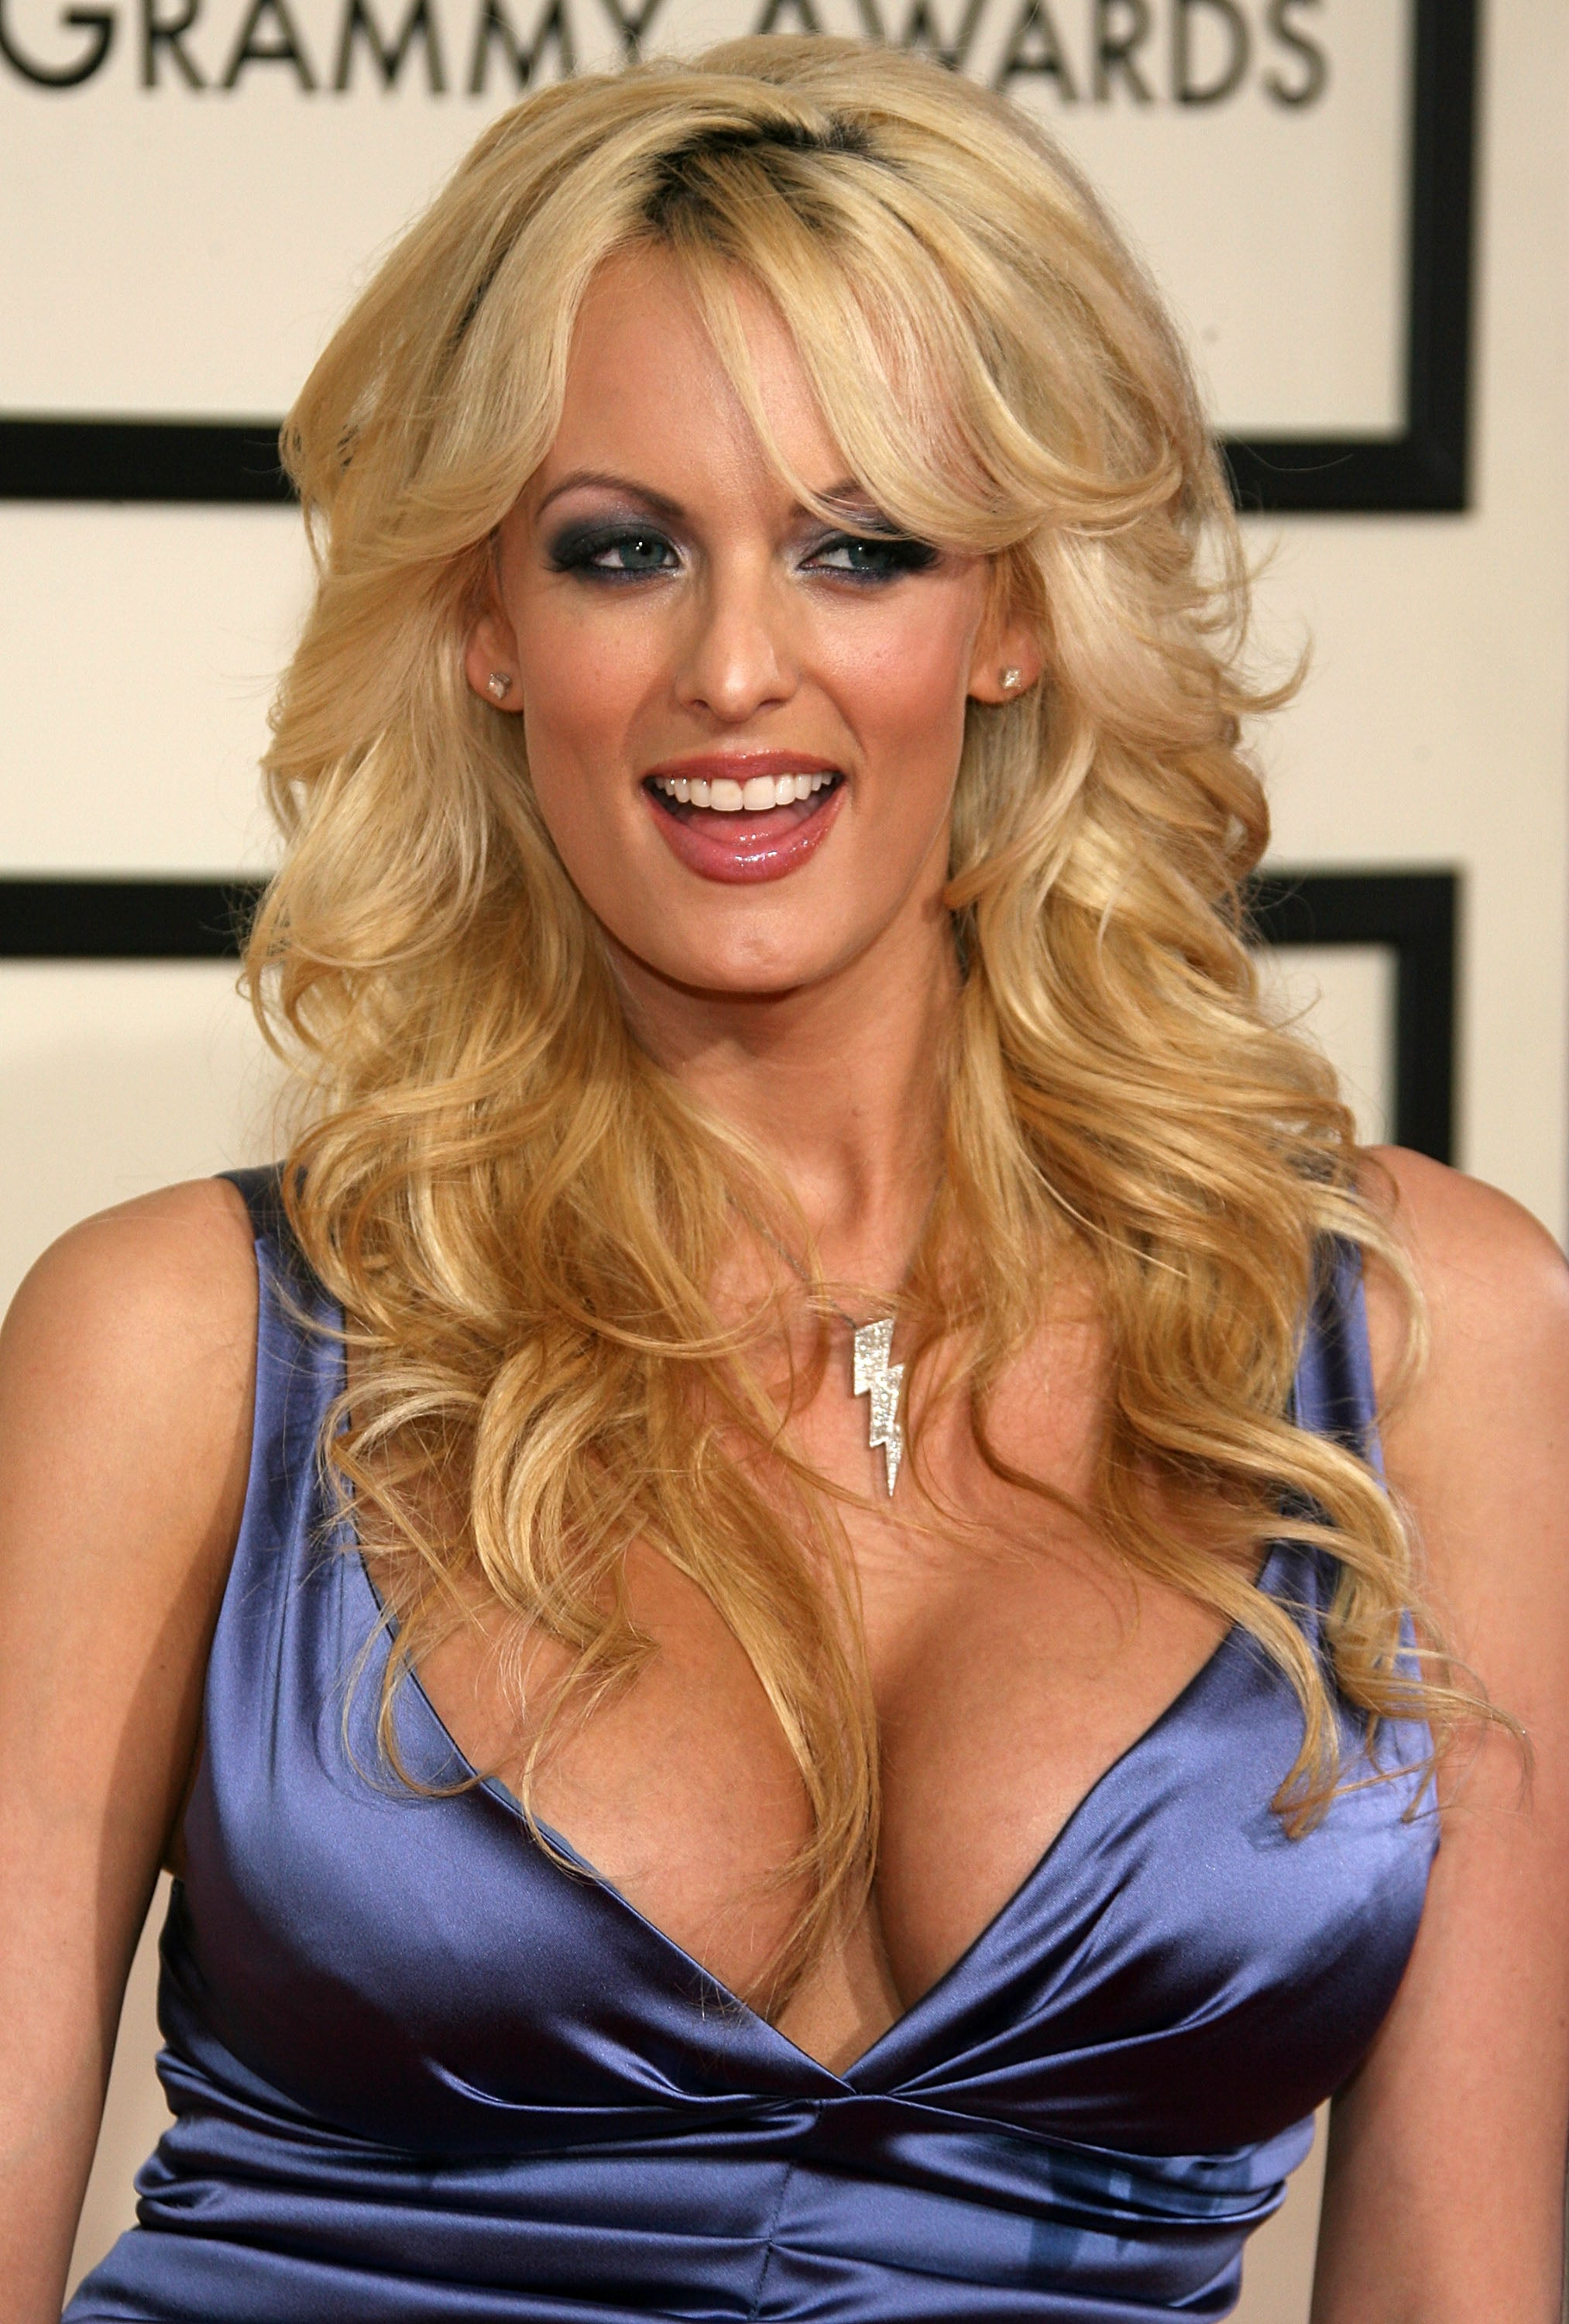 Stormy Daniels at the Grammys in Los Angeles in 2008.